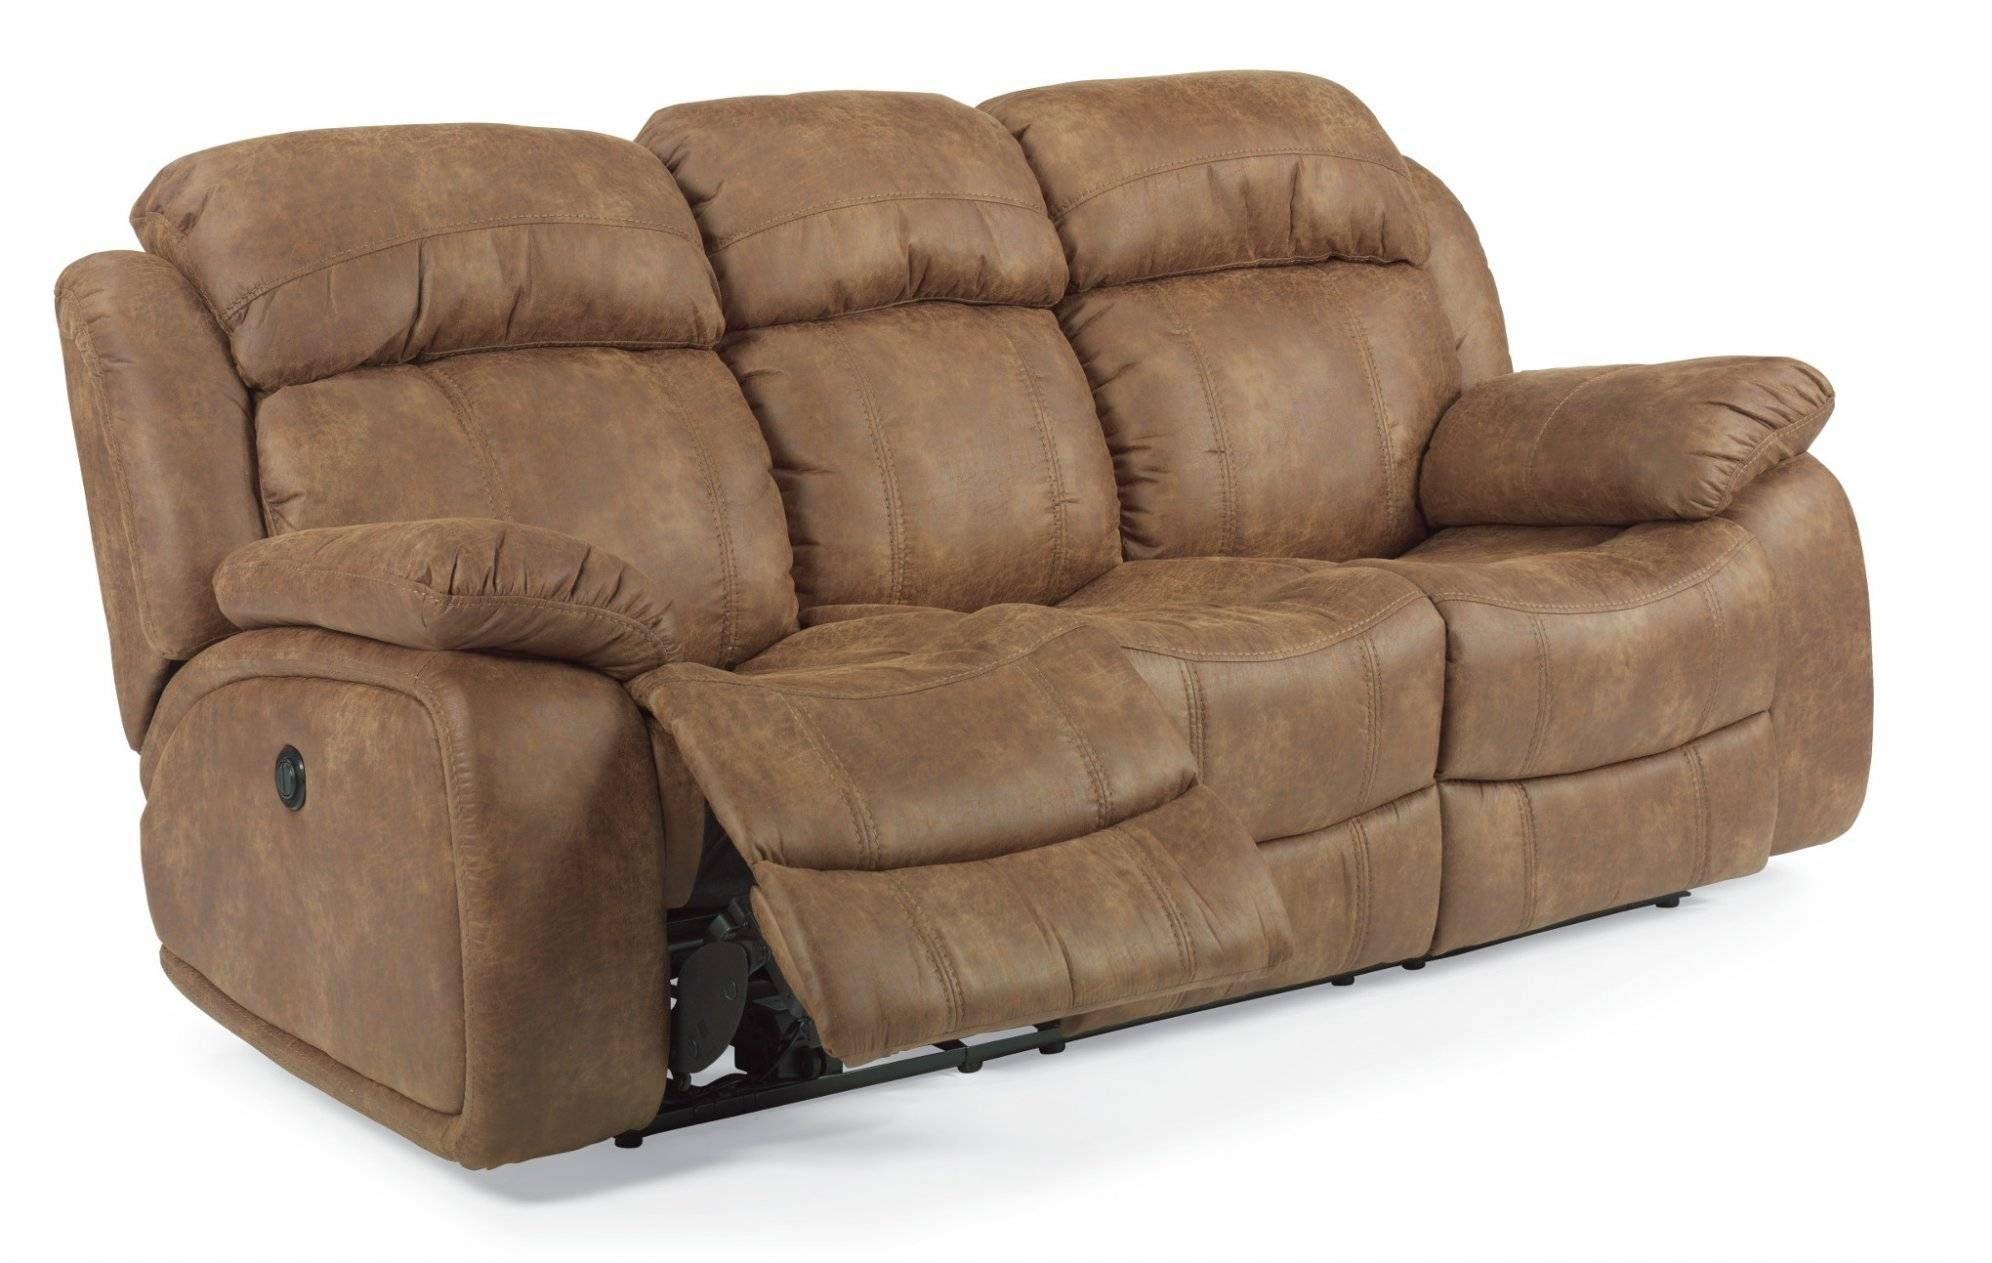 Furniture: Nice Interior Furniture Designrobert Michaels throughout Down Feather Sectional Sofa (Image 16 of 30)